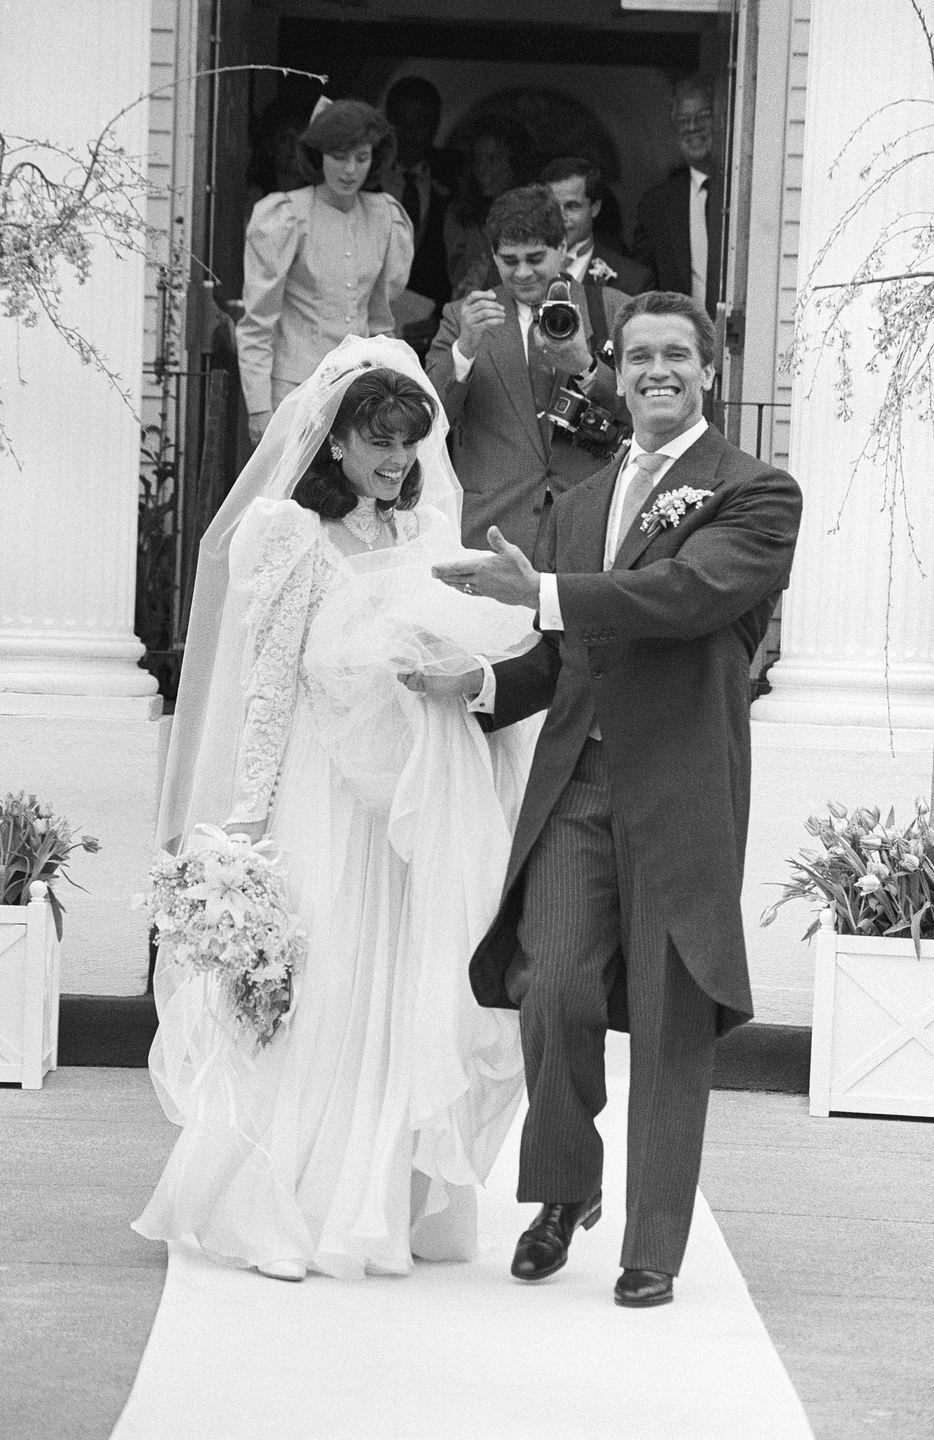 <p>Beaming with pride, Arnold Schwarzenegger helps his new wife, Maria Shriver, with her veil as the two depart the St. Francis Xavier Church in Hyannis, Massachusetts. </p>